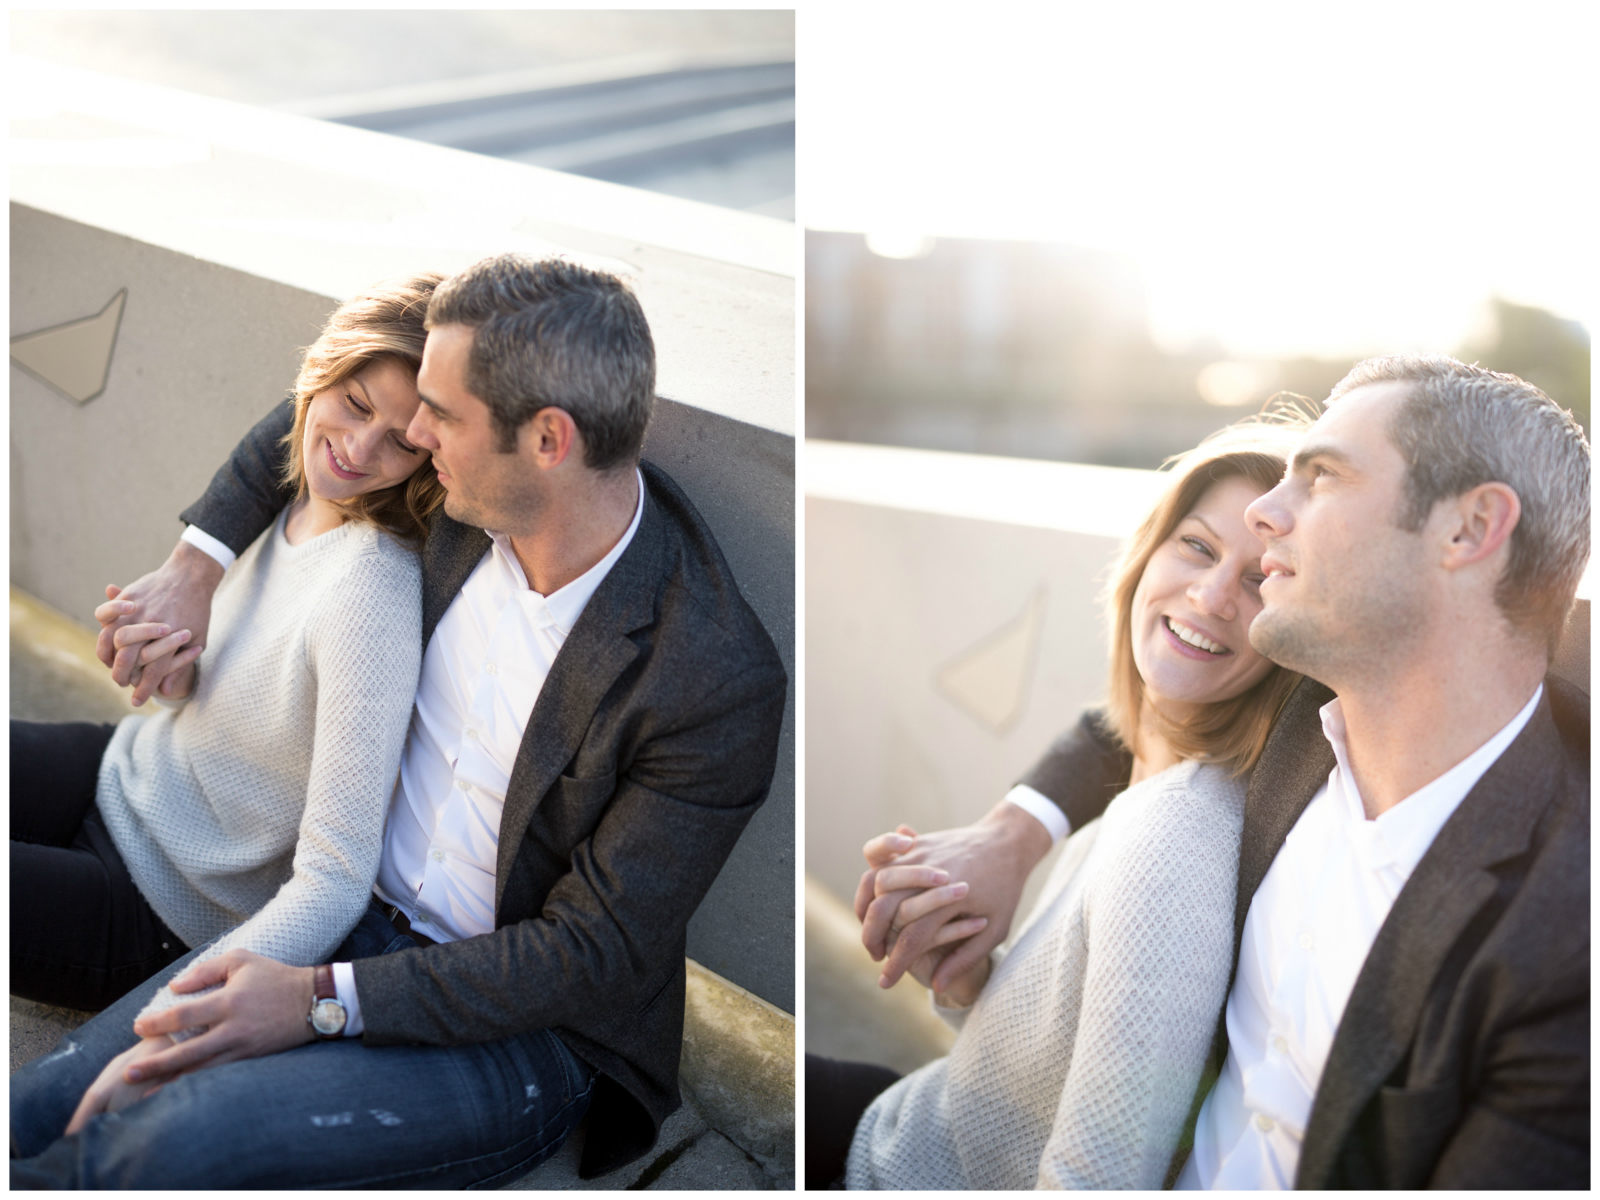 Séance photo Love Session Shooting couple amoureux Philharmonie de Paris lever du soleil